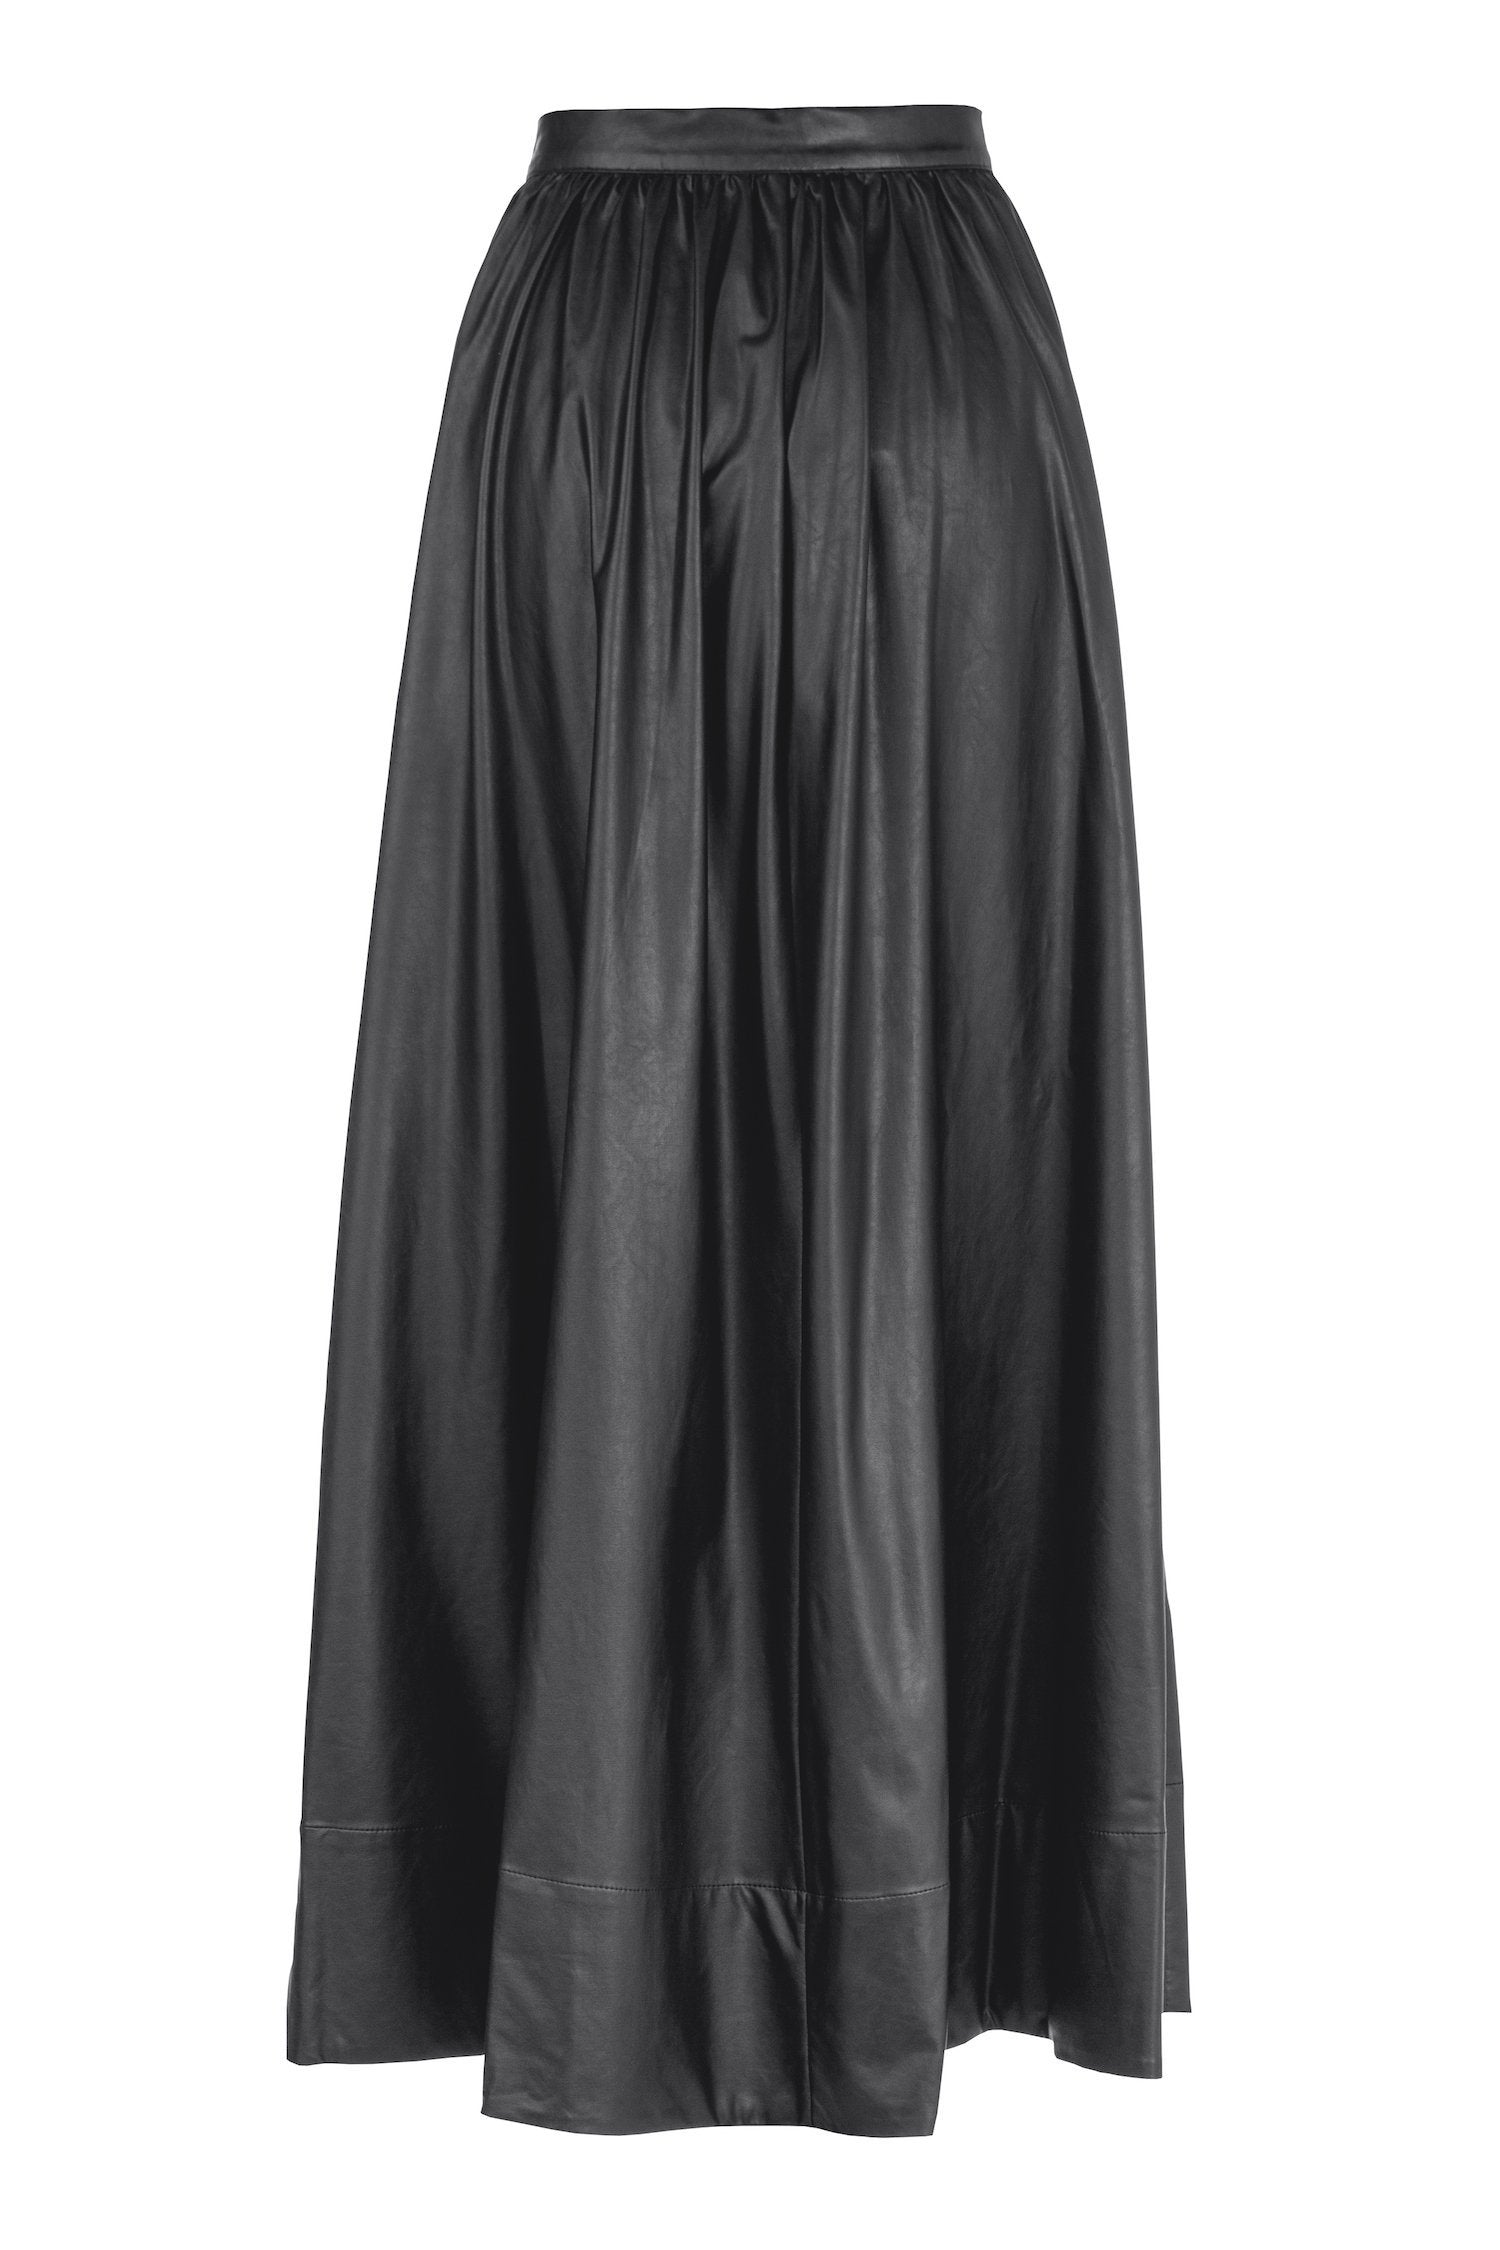 Bell Skirt Vegan Leather Black Deitas Skirts